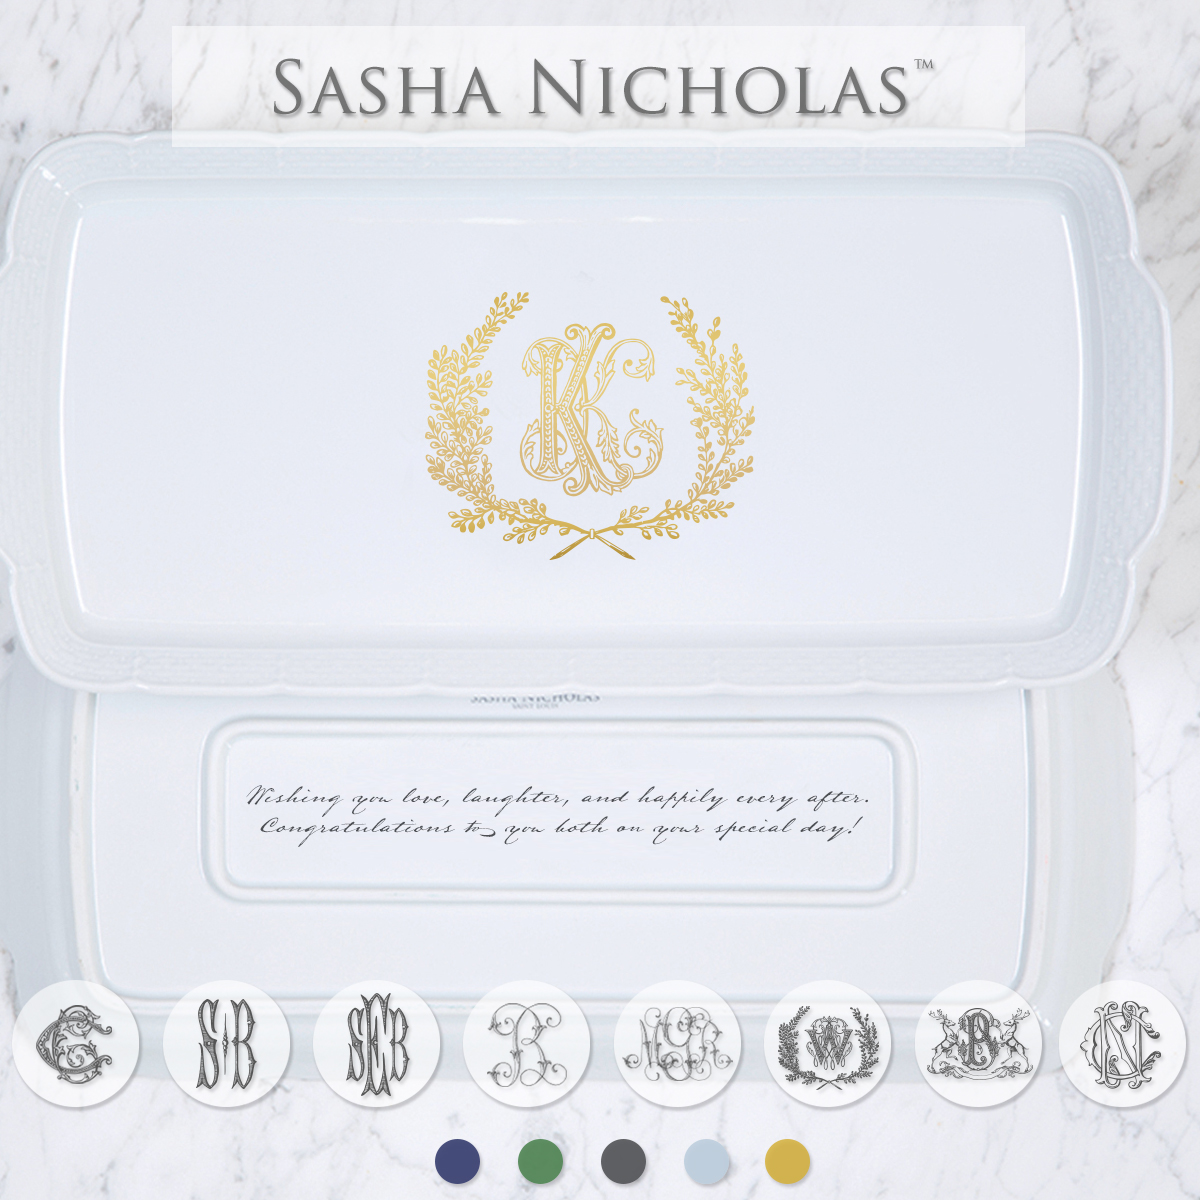 A beautiful addition to your dinnerware collection and to adorn your tablescapes with. It makes the perfect gift for your wedding registry with the included inscription on back. Choose from their signature font styles or use a custom monogram or crest of your choice! | Sasha Nicholas's white porcelain hostess platter